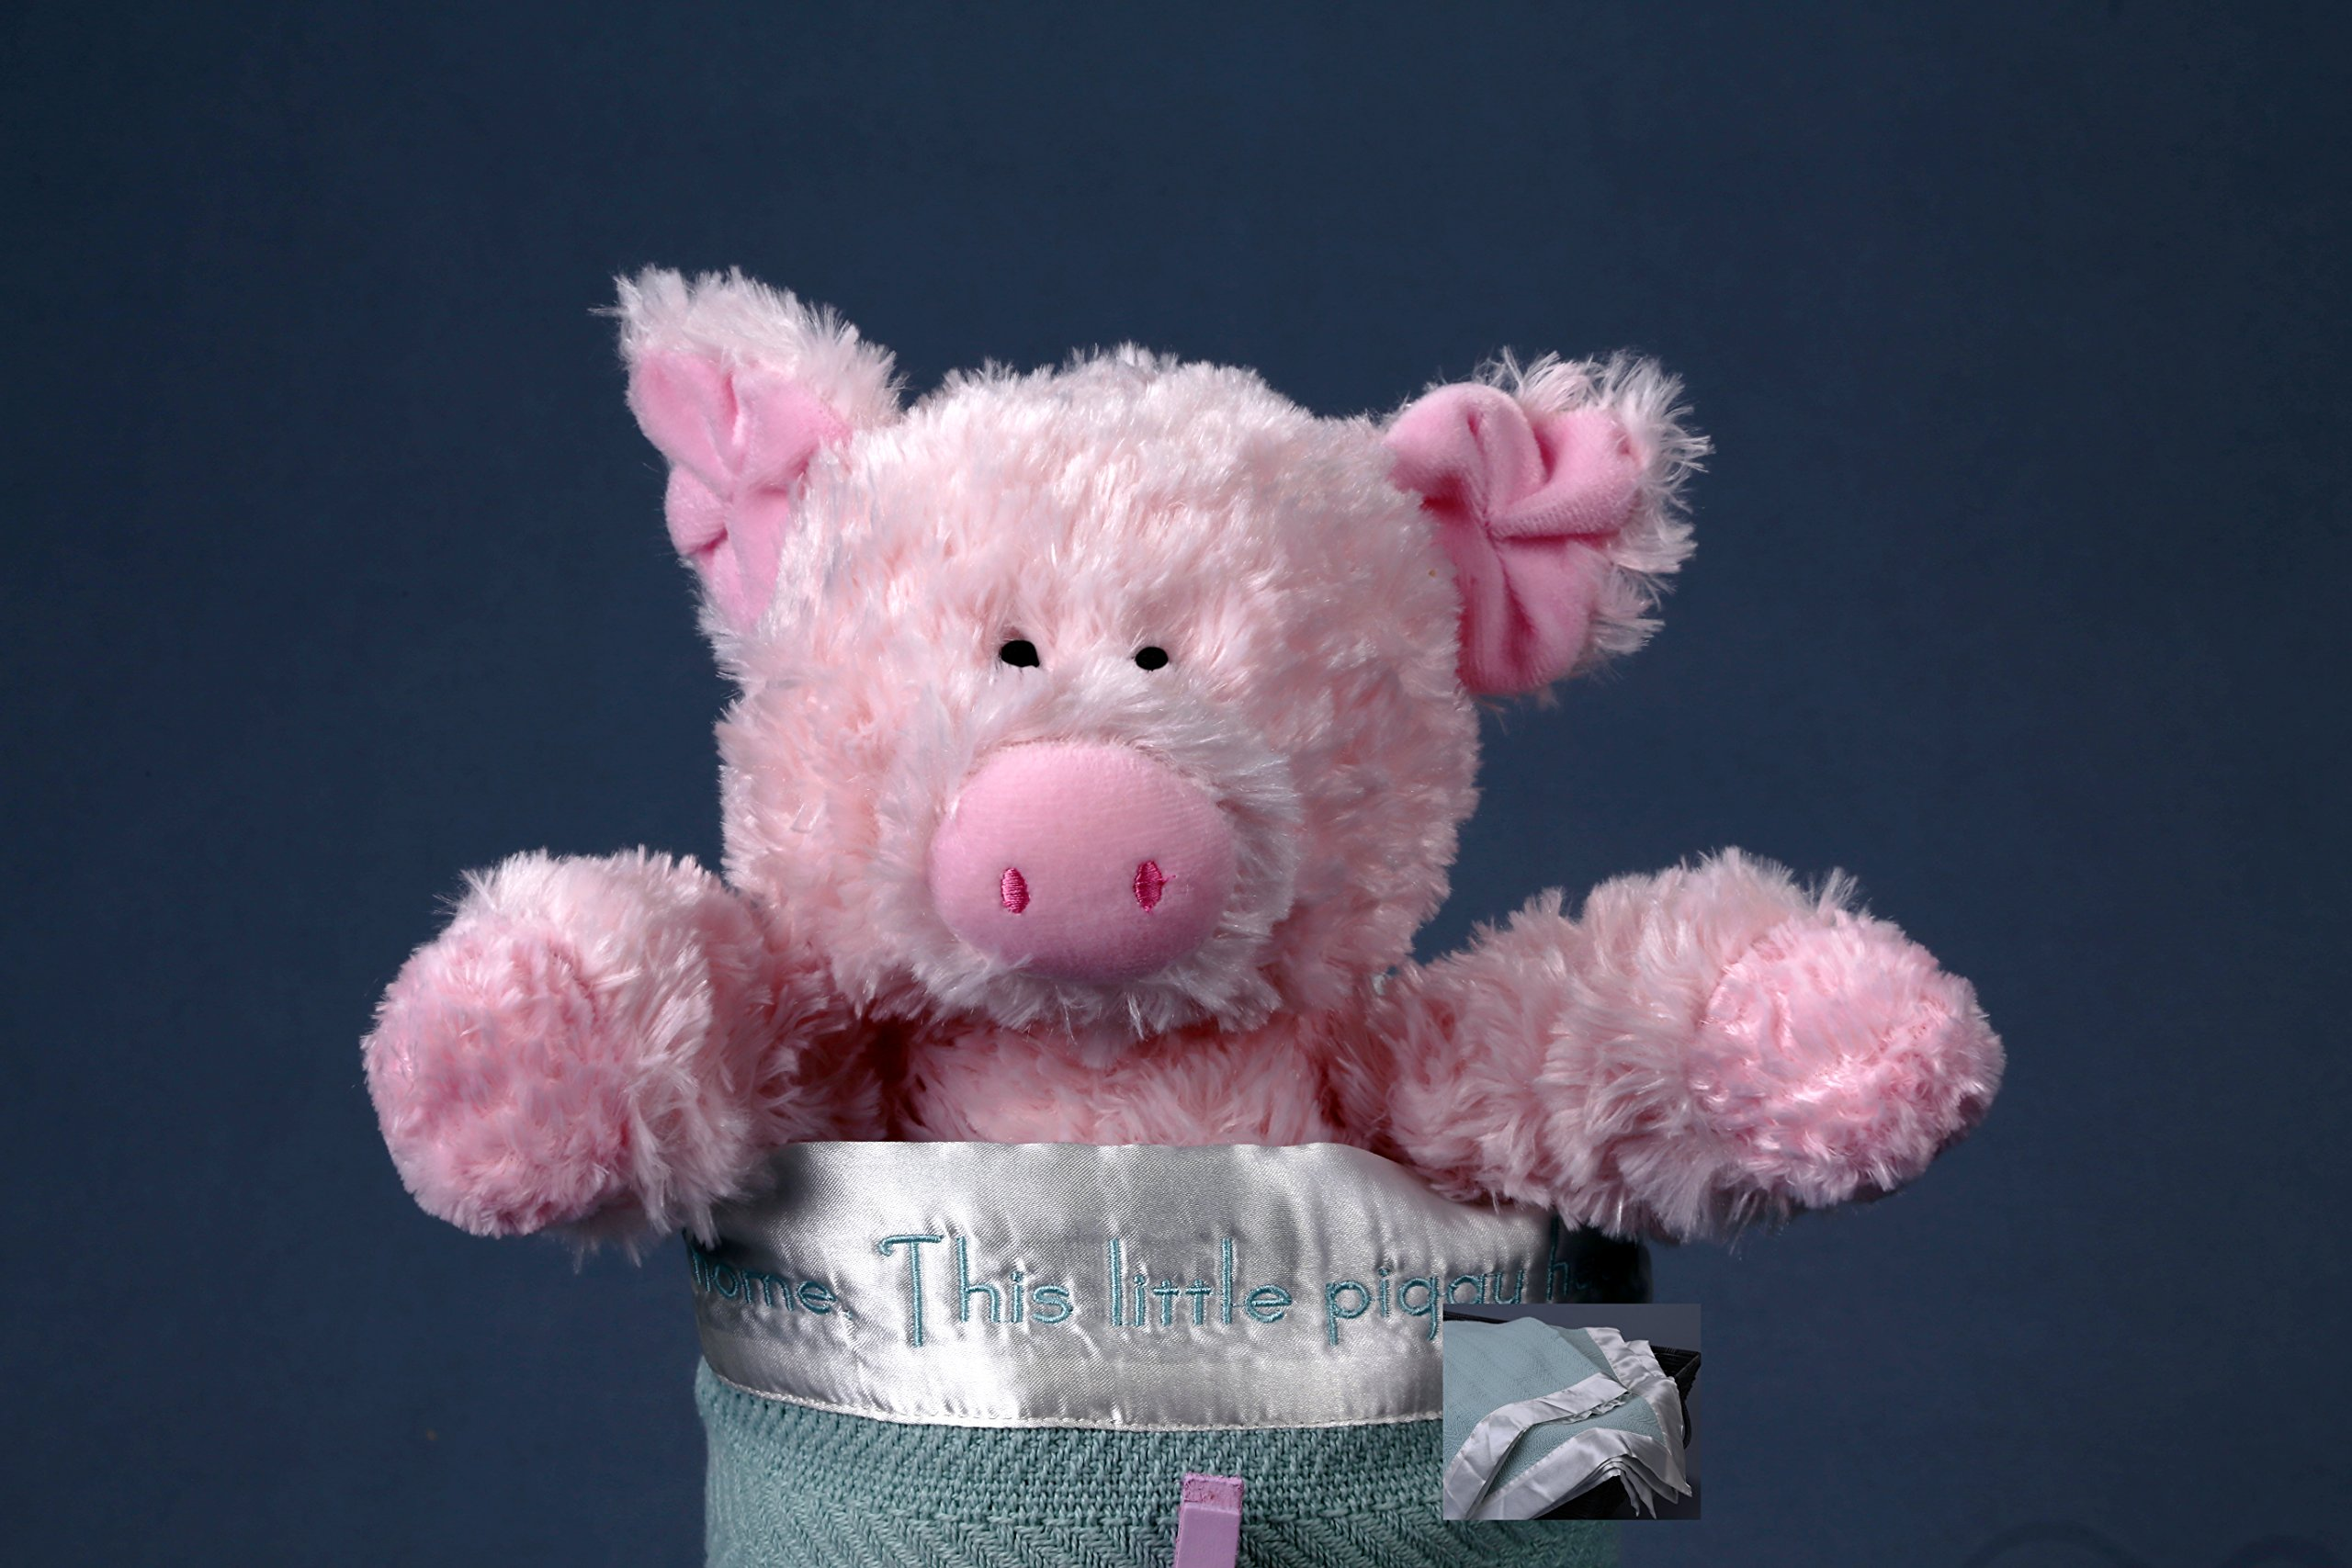 ''This Little Piggy'' Nursery-Rhyme-Embroidered Baby Blanket - Size 30''x30''